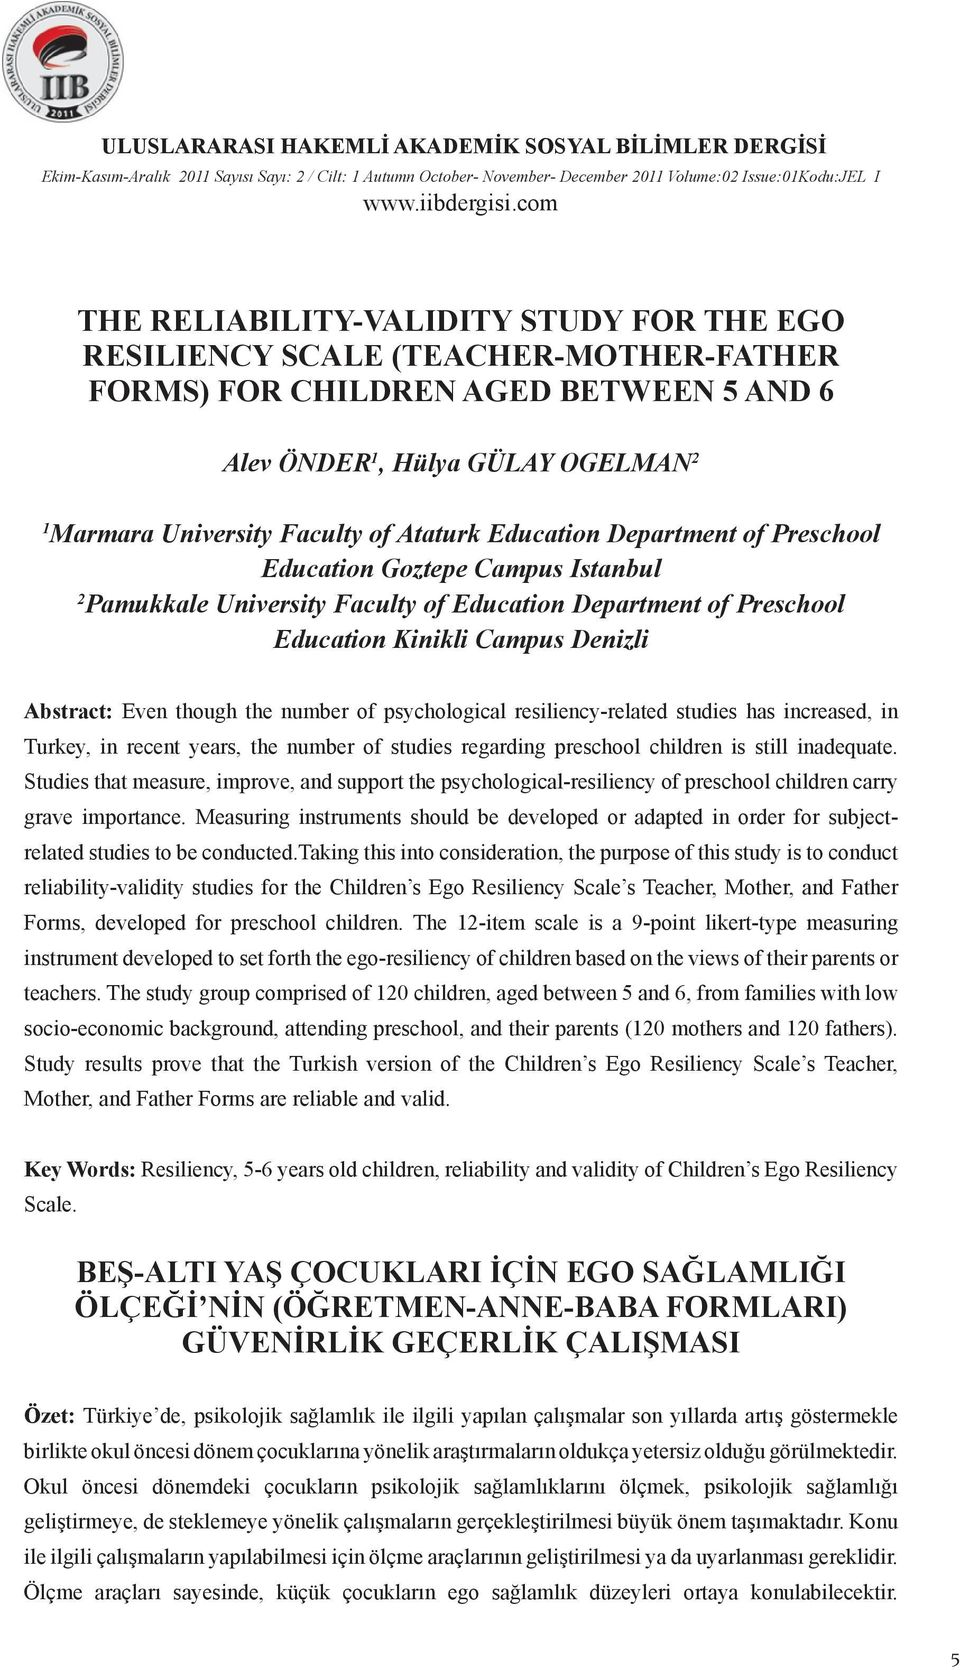 University Faculty of Education Department of Preschool Education Kinikli Campus Denizli Abstract: Even though the number of psychological resiliency-related studies has increased, in Turkey, in